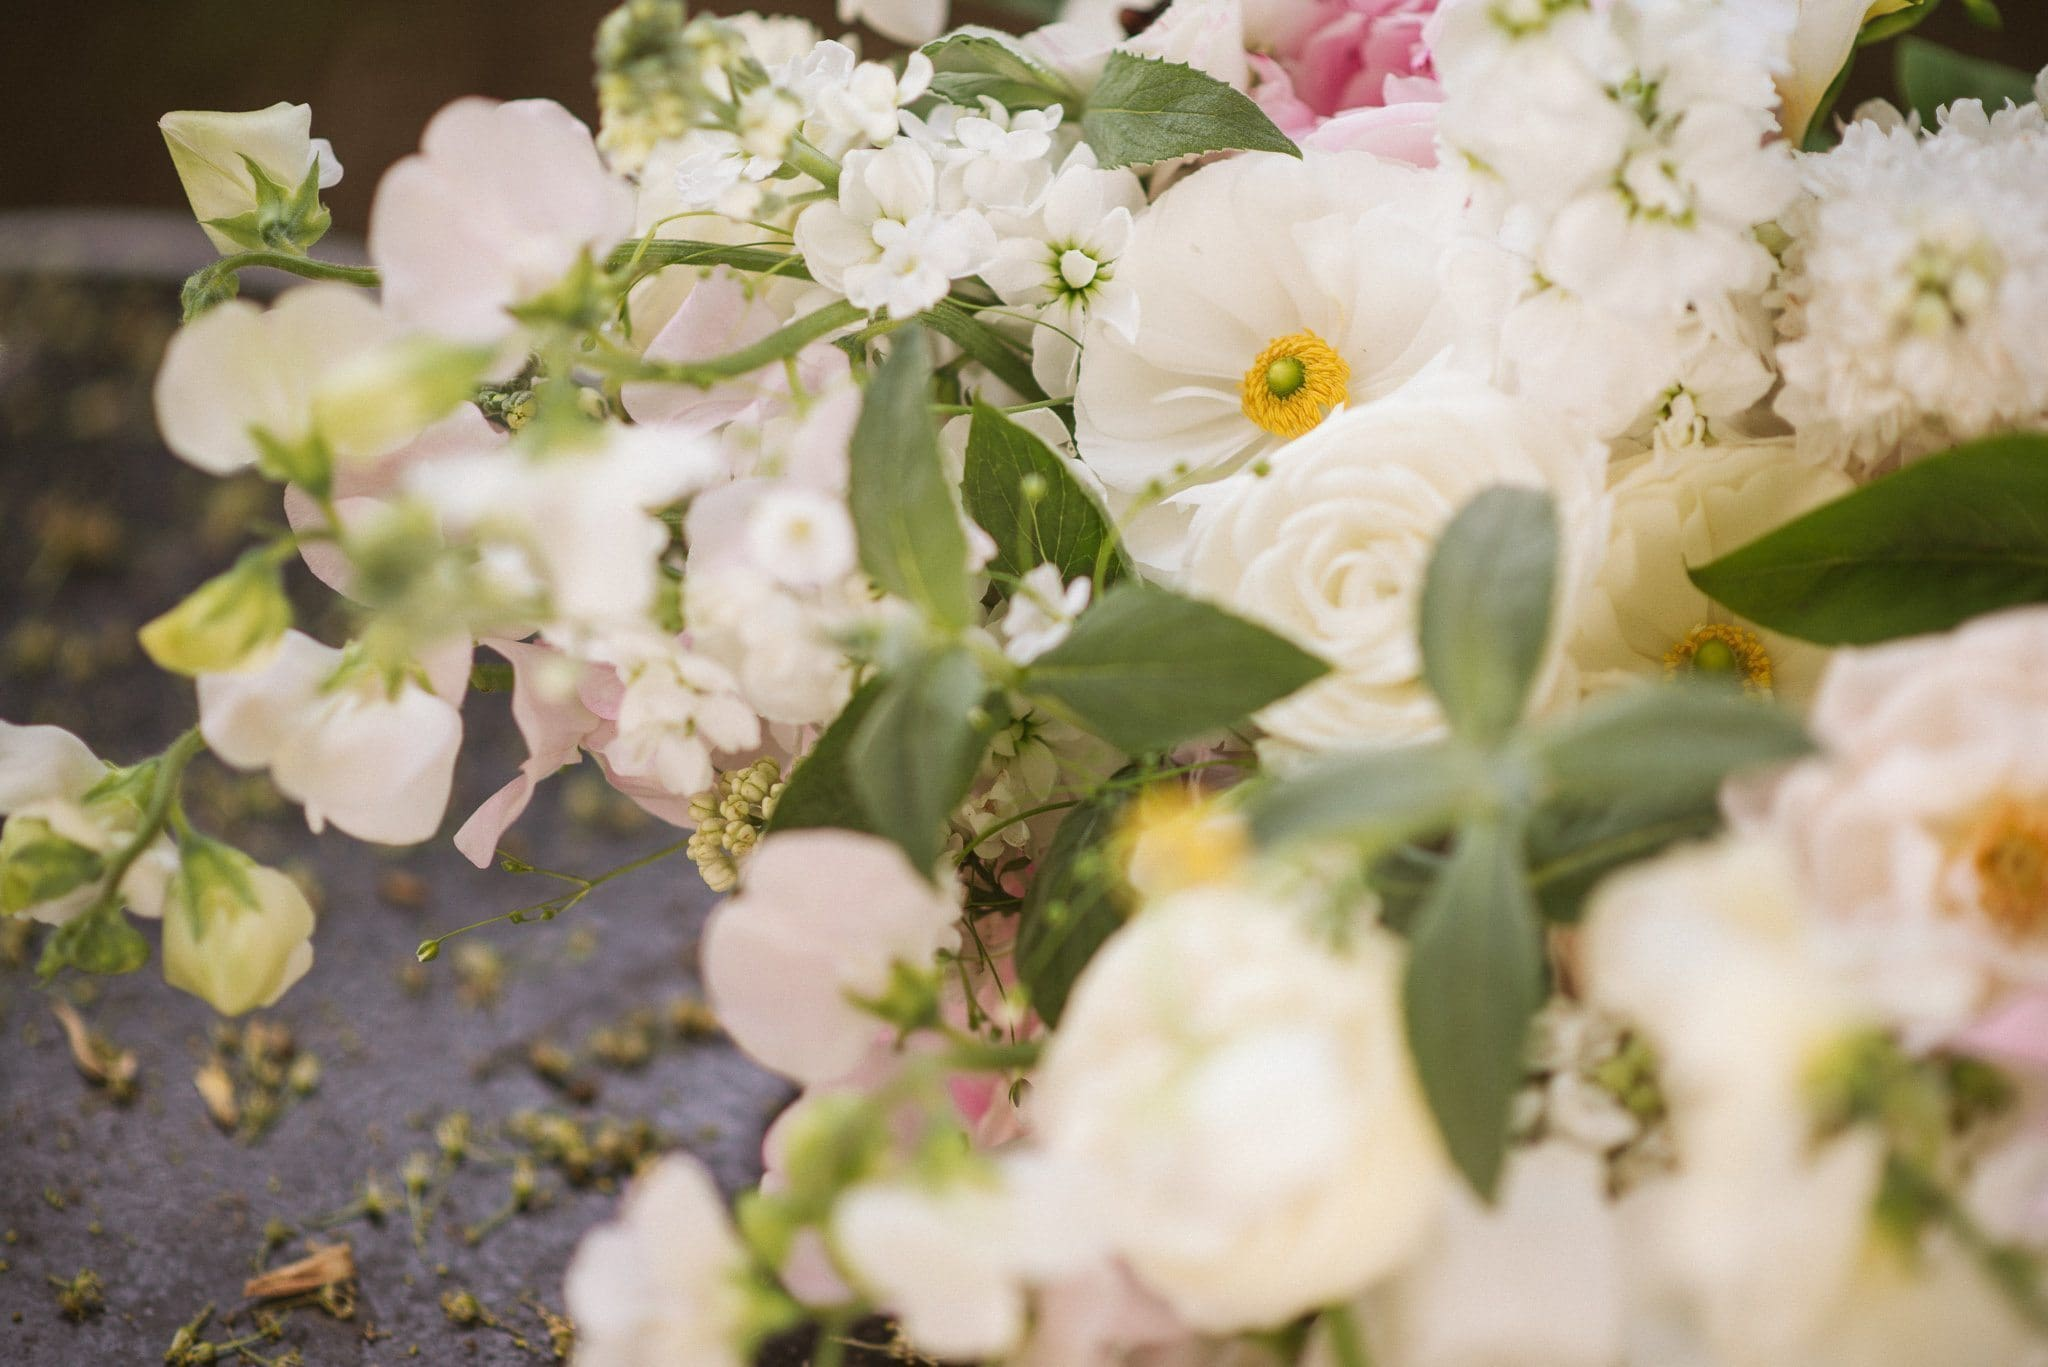 A close up shot of Sorayya's wedding bouquet, featuring loose white, cream and pale pink blooms